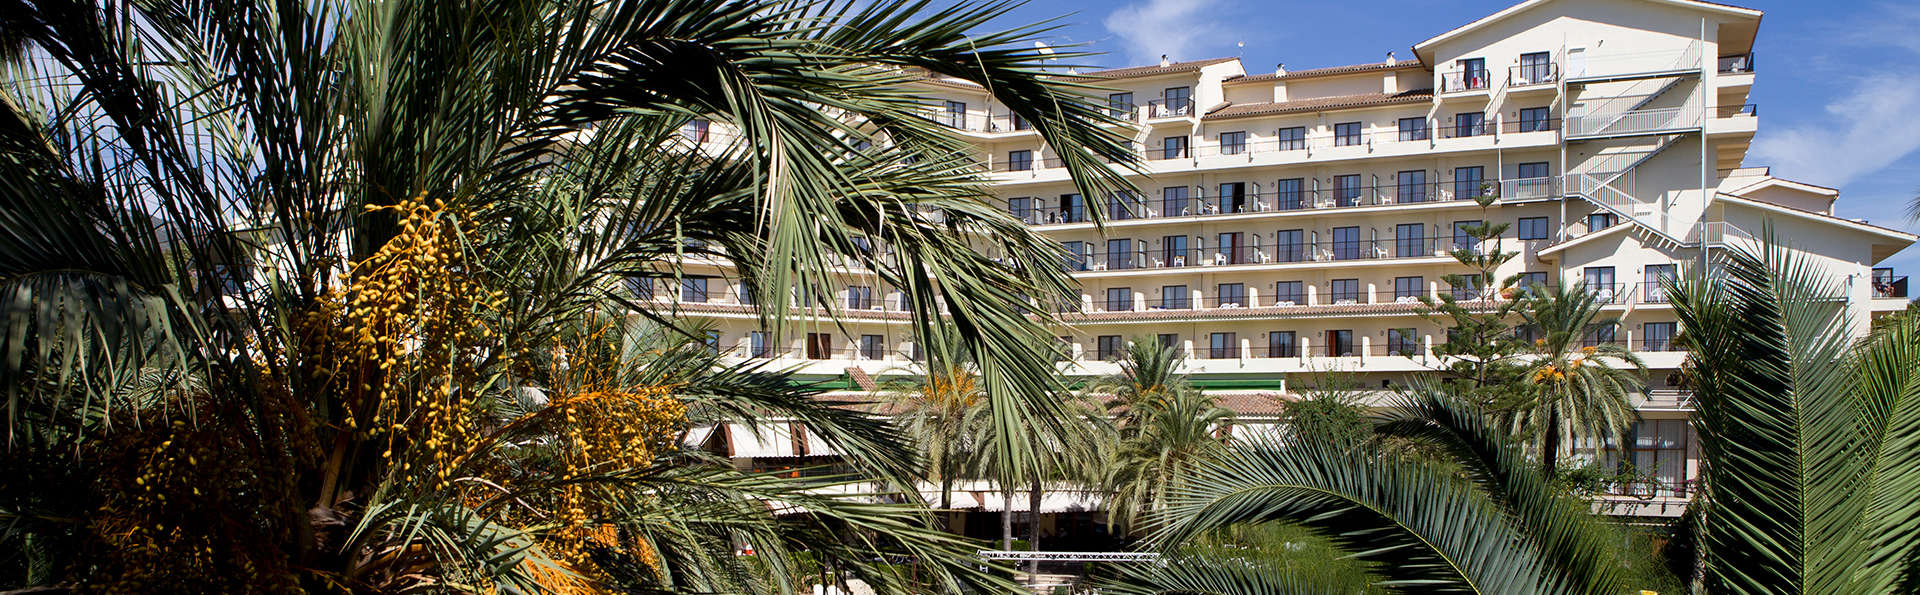 Hotel Intur Orange - edit_front2.jpg